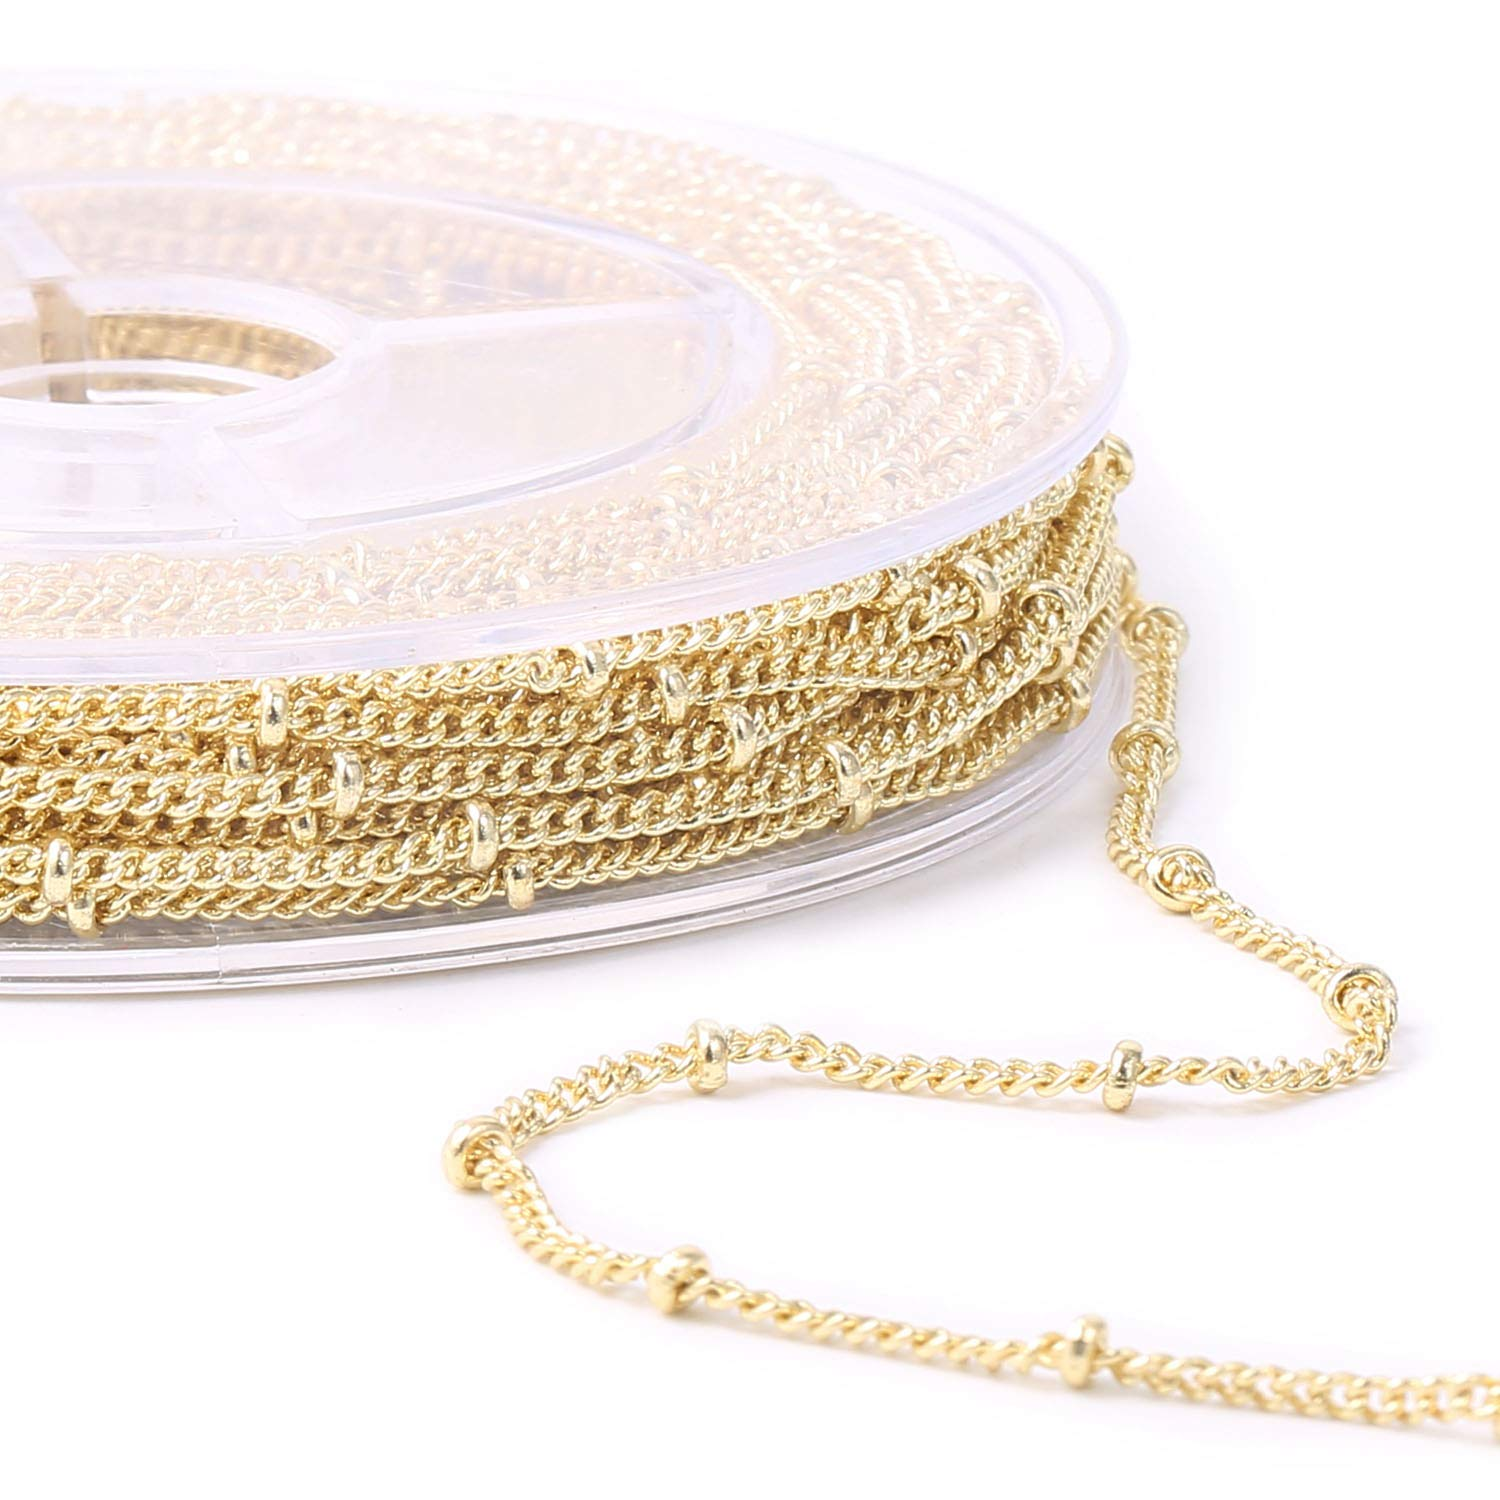 33 Feet 1.5mm 14K Gold Plated Satellite Curb Link Chain Spool with 20 Lobster Clasps and 50 Jump Rings